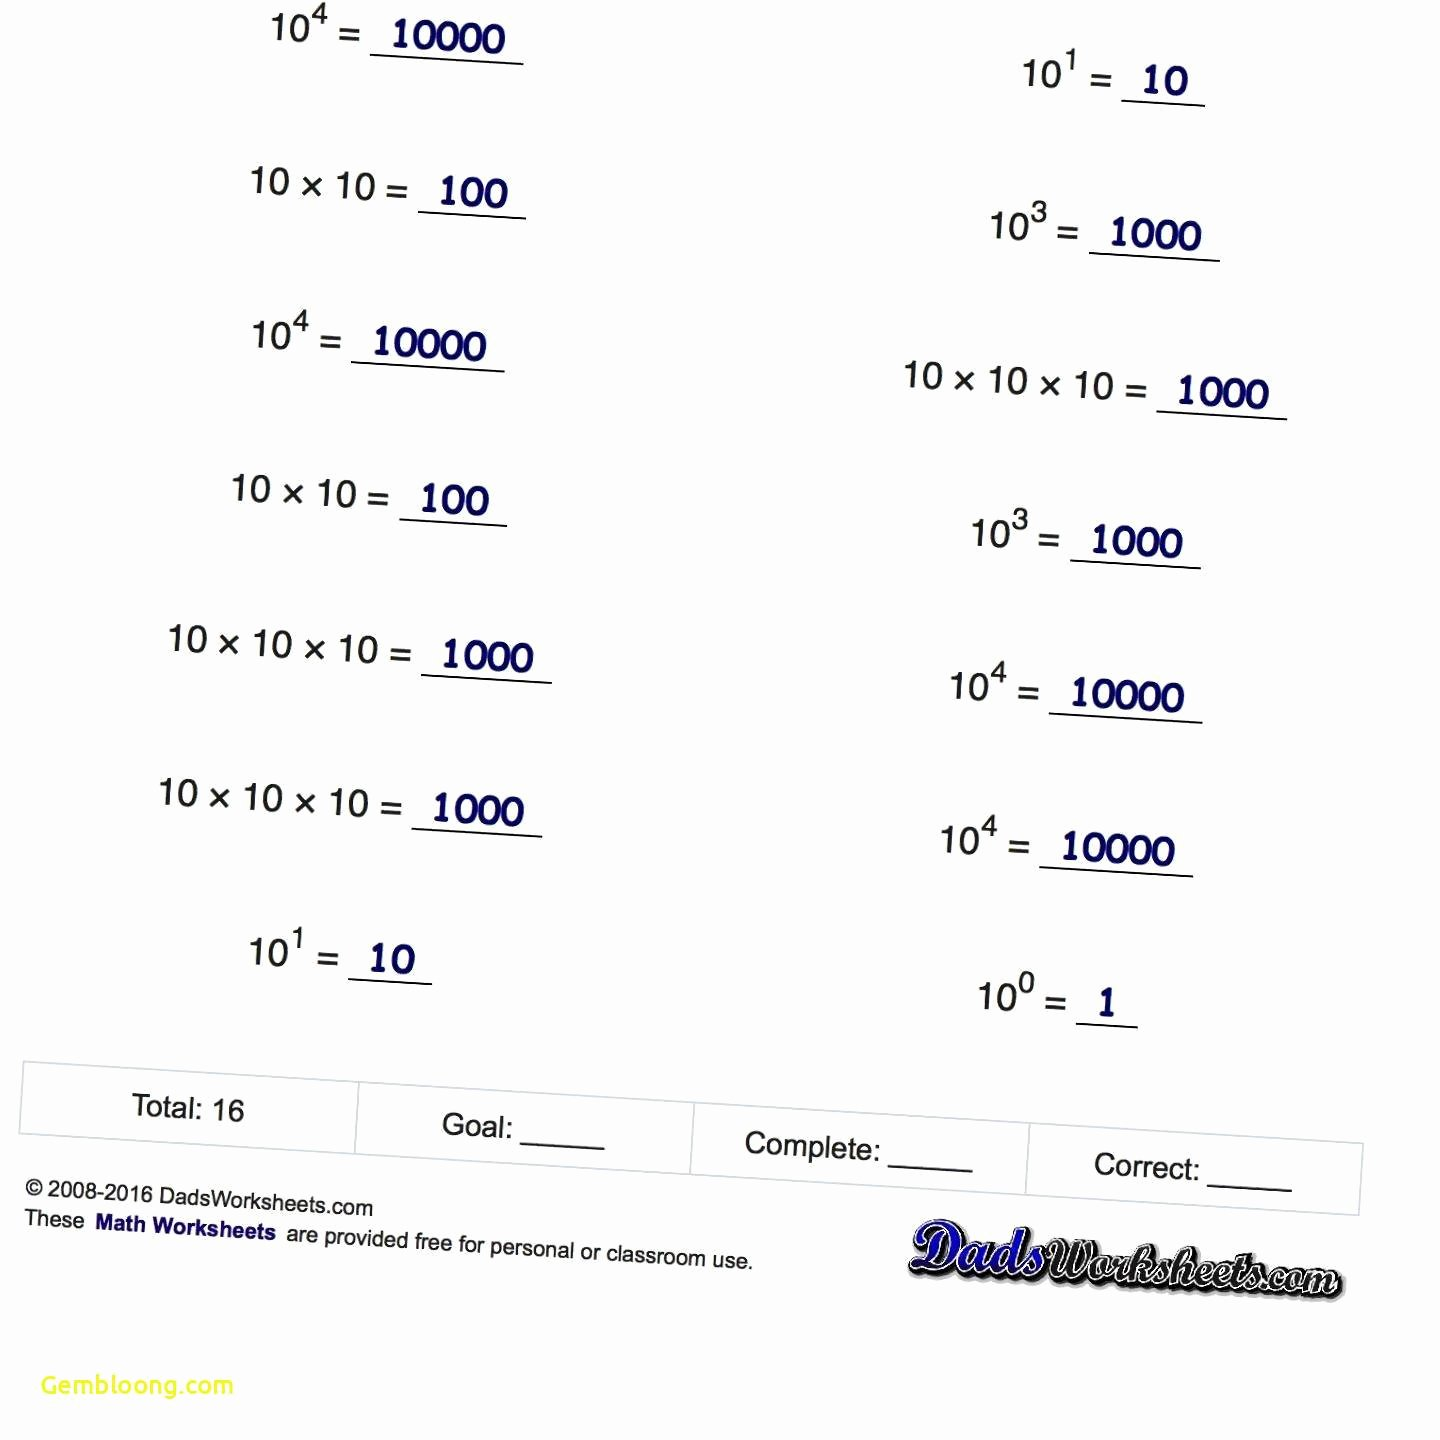 Negative Exponents Worksheet Pdf Elegant Exponents Worksheets Kuta Cramerforcongress